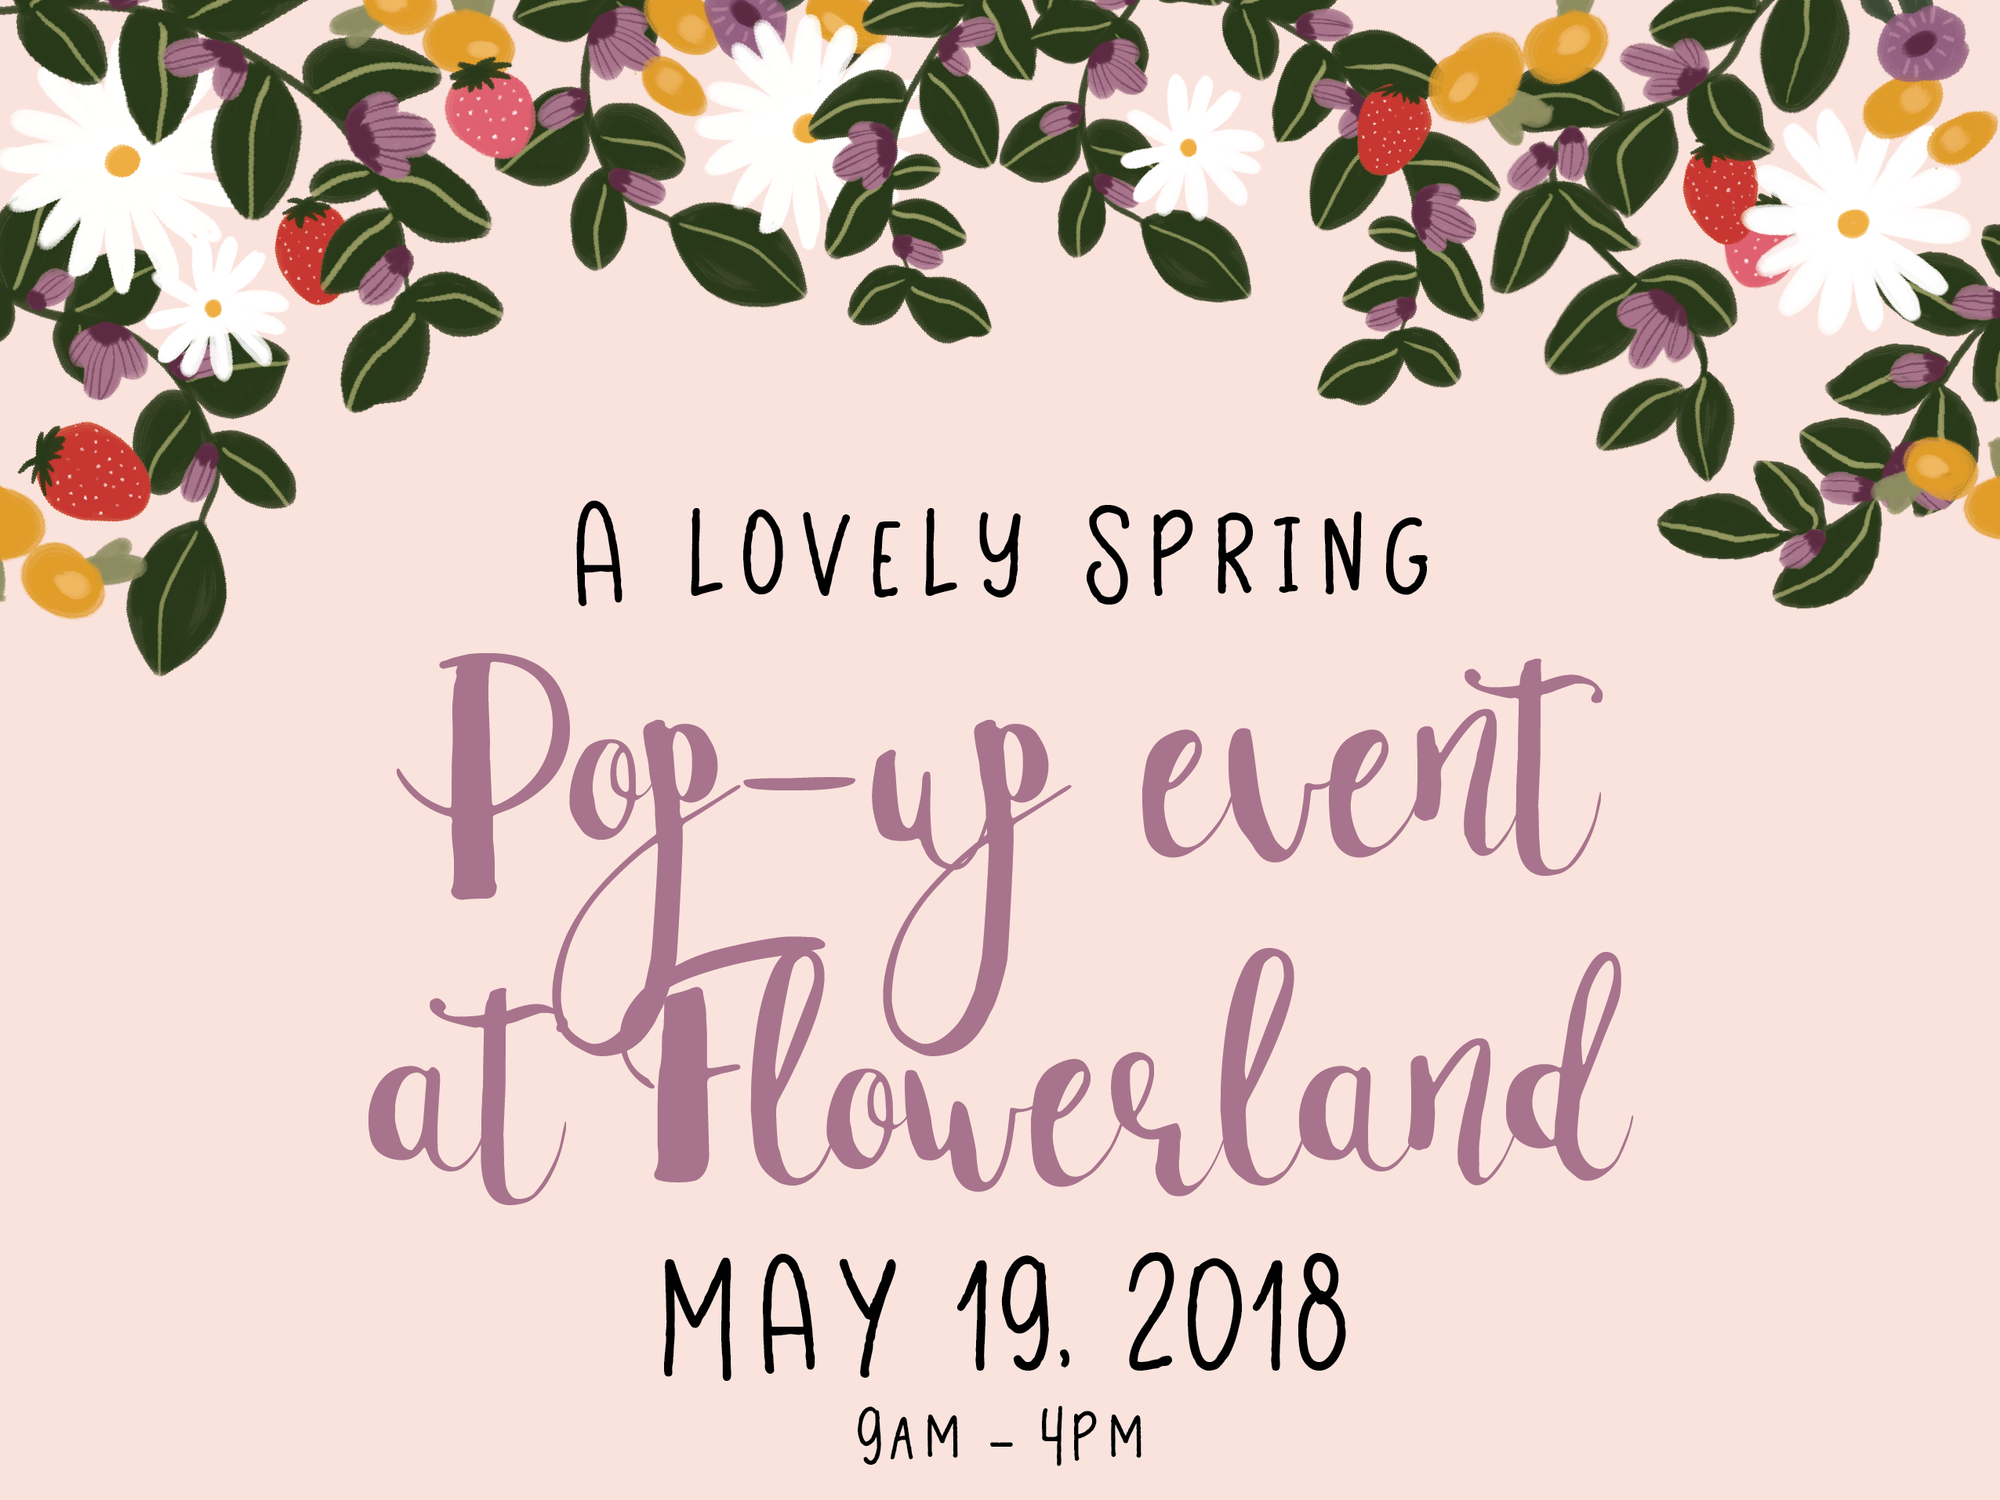 May 19: Pop-up Shop at Flowerland